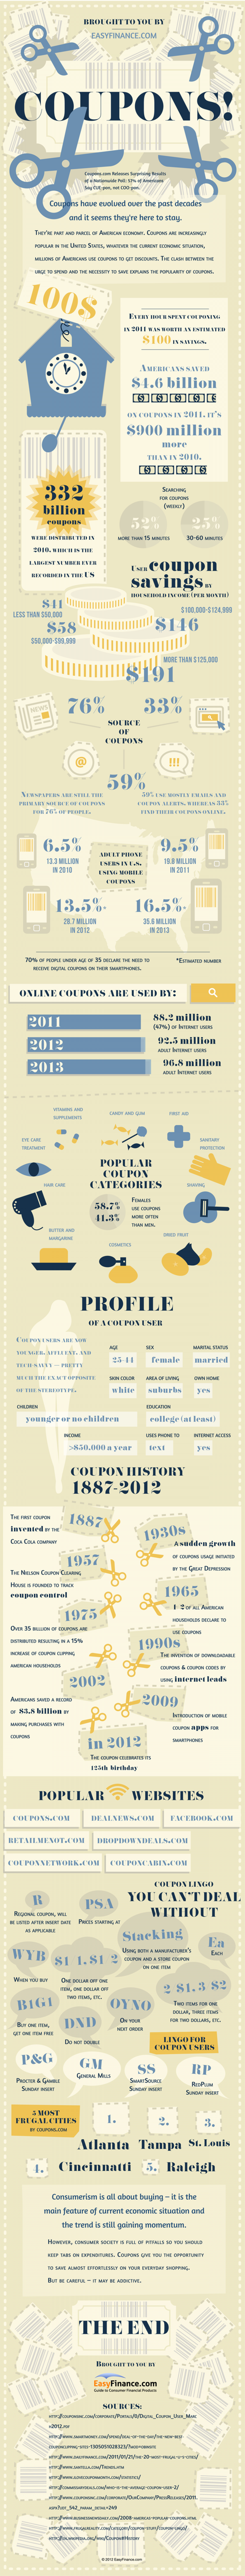 Coupons! Infographic